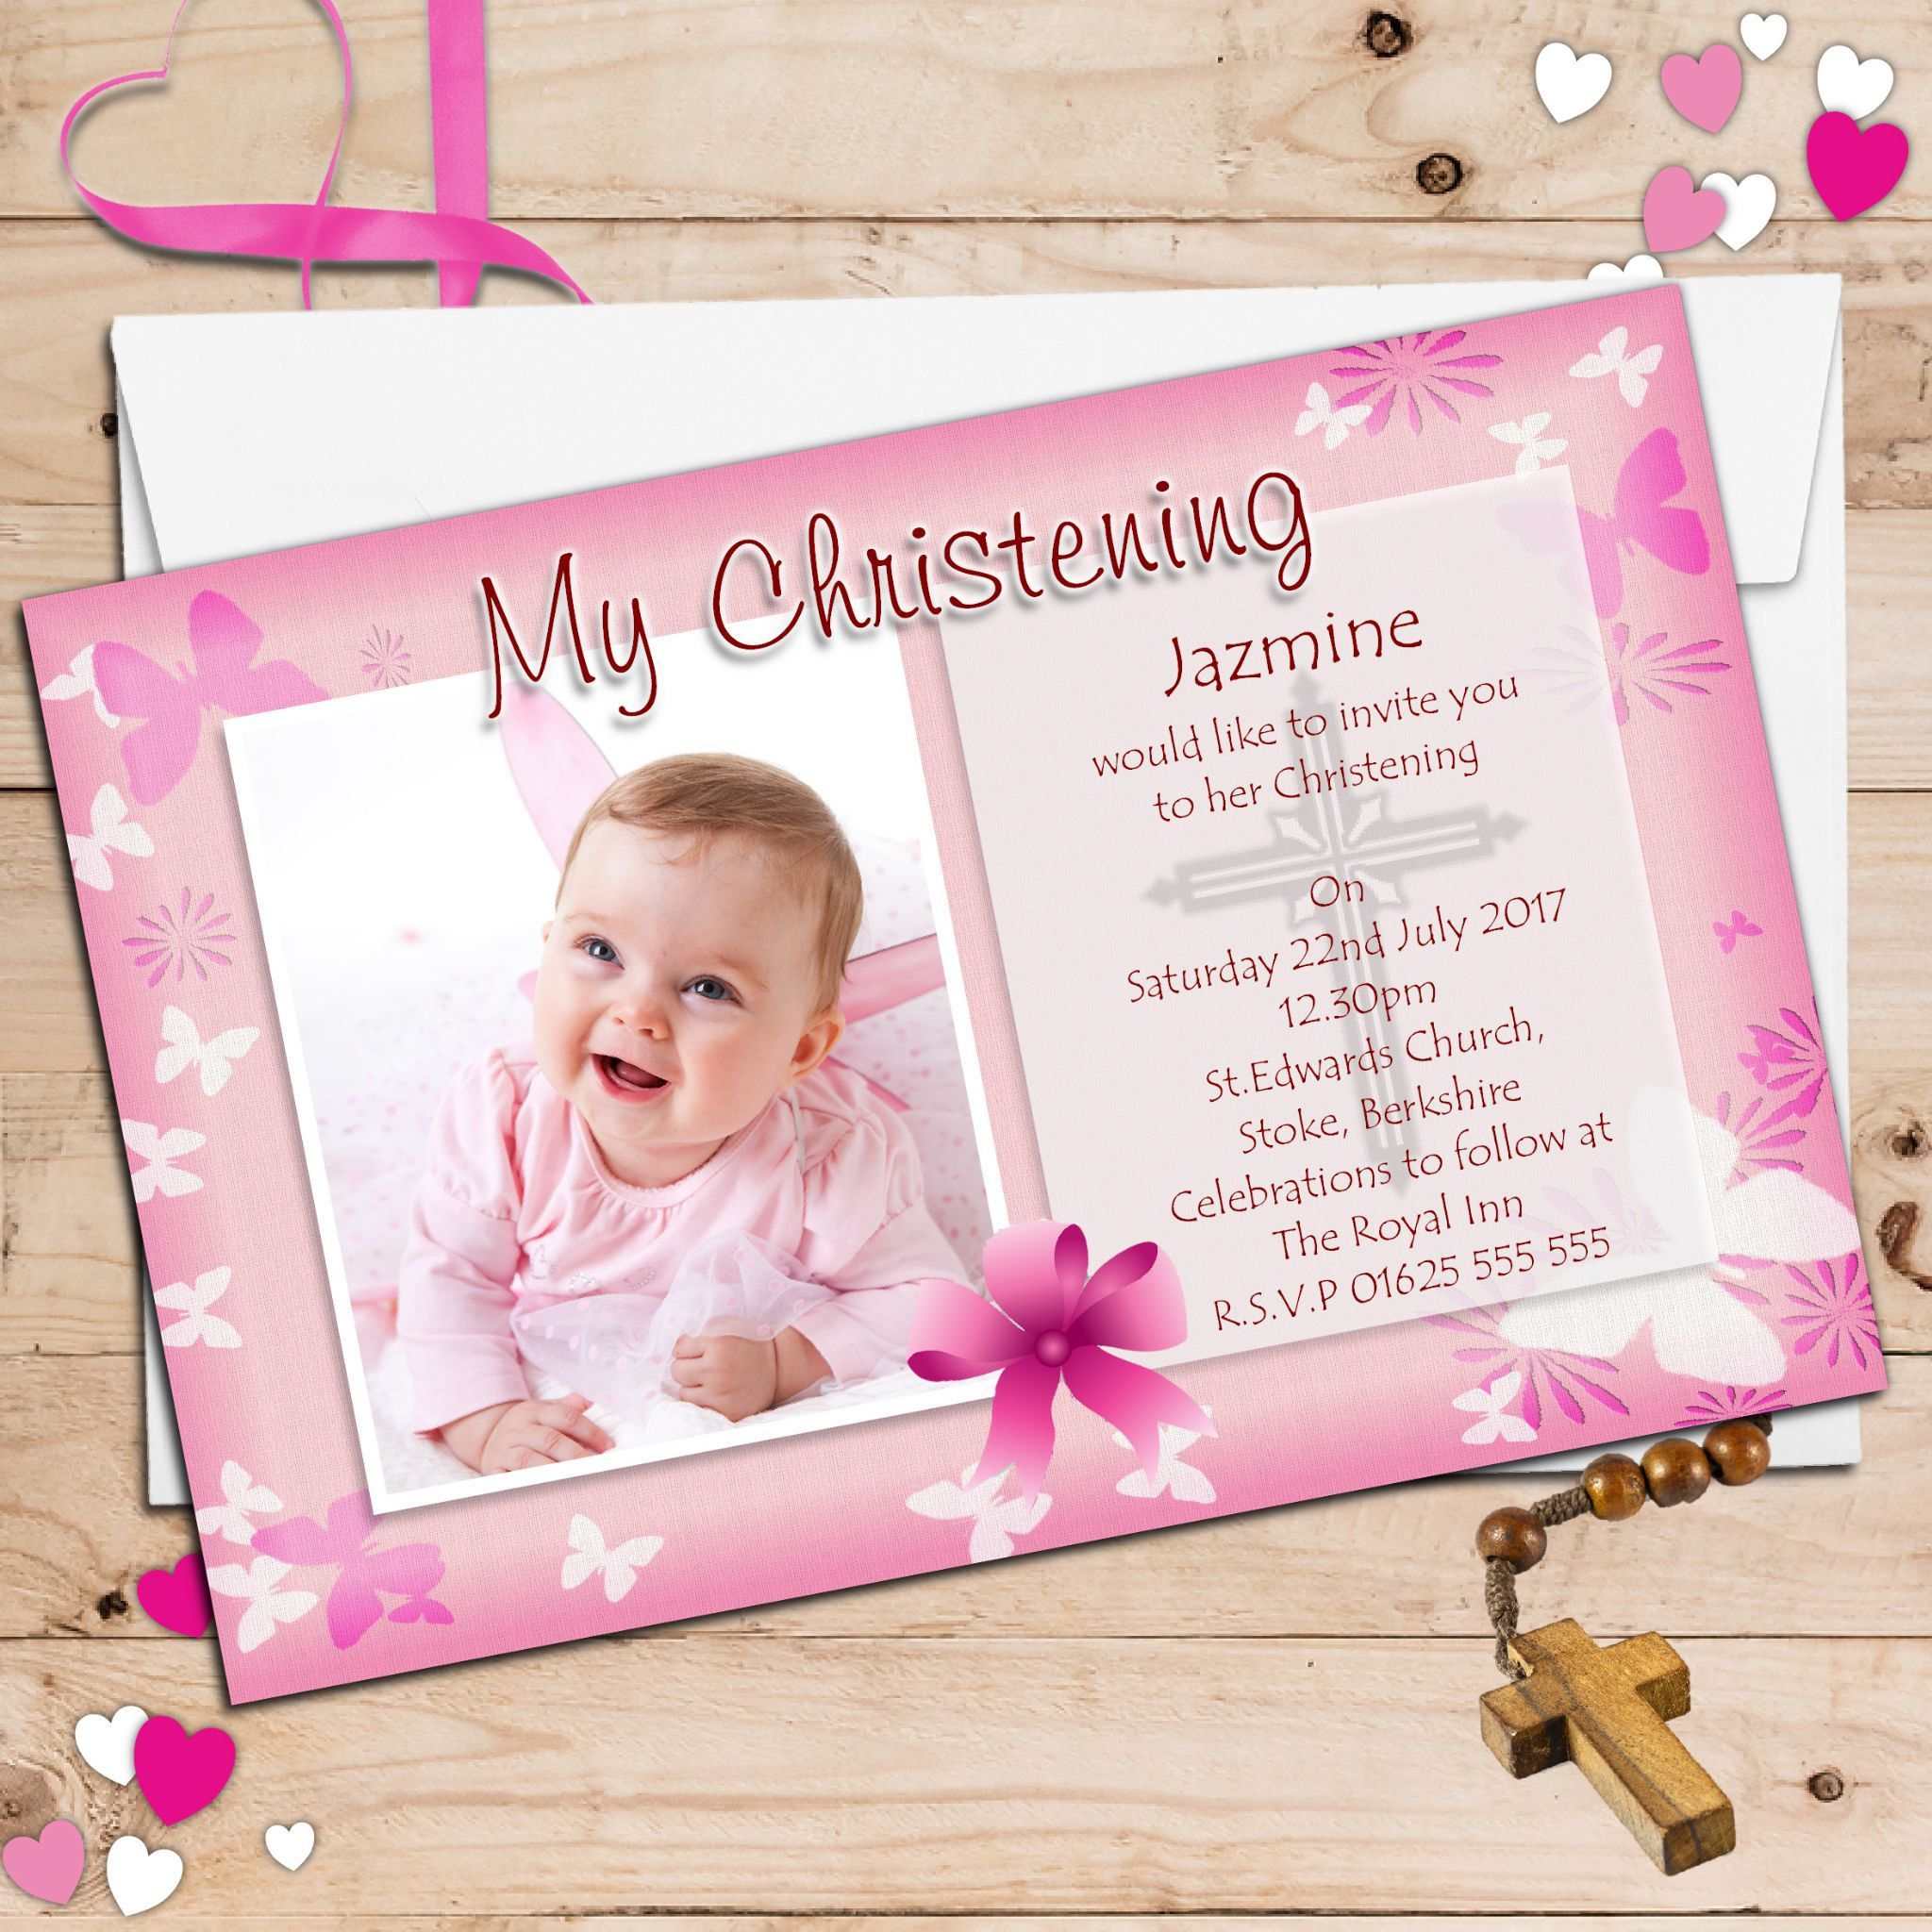 Free christening invitation template download baptism invitation card for christening invitation card for christening blank background superb invitation superb stopboris Image collections